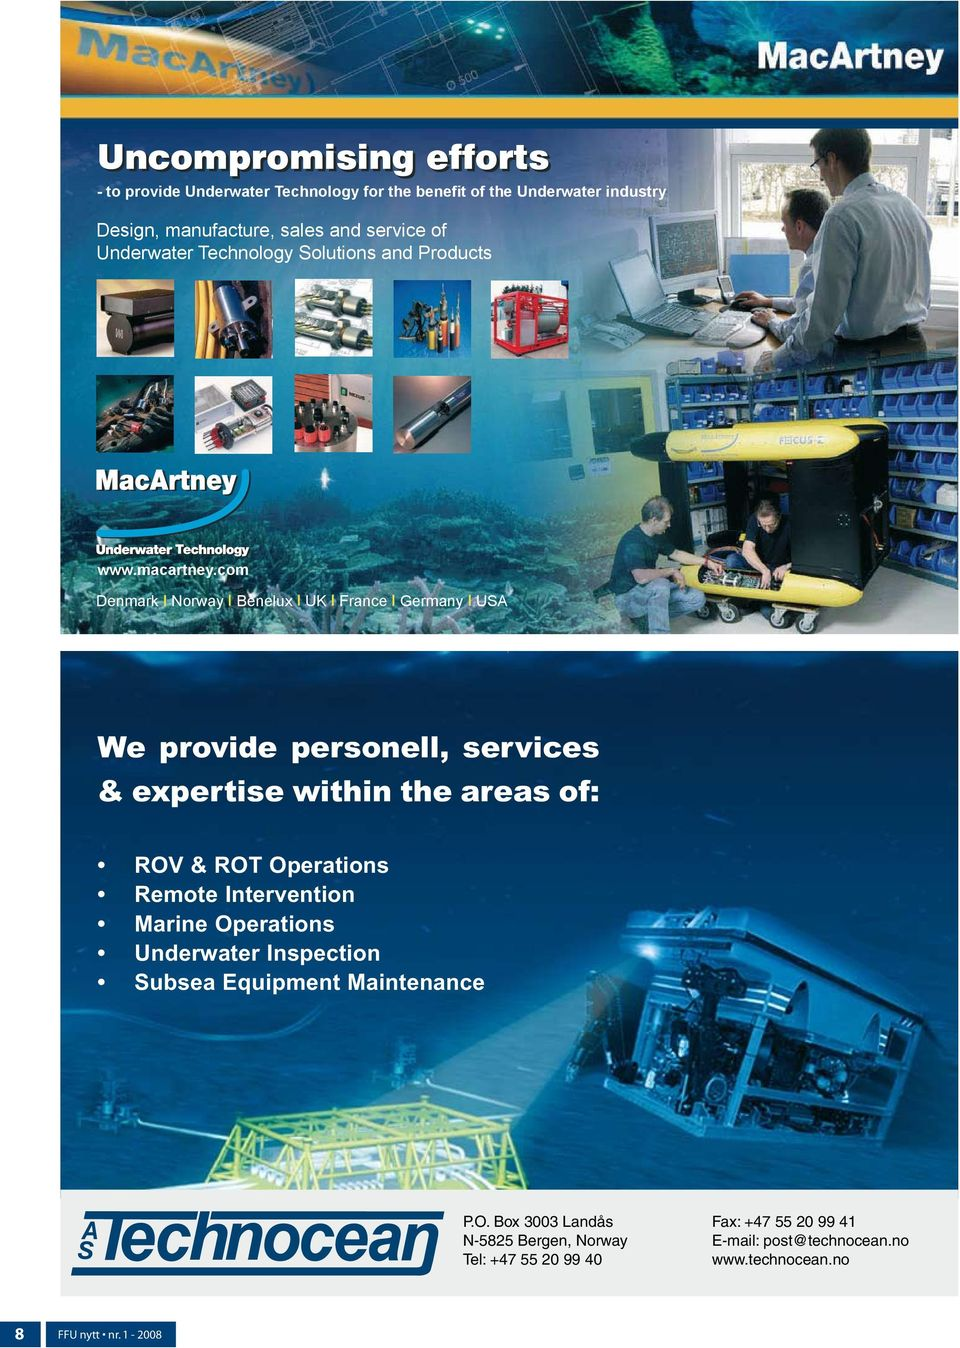 com Denmark Norway Benelux UK France Germany USA technocean_annonse 17-03-03 23:07 Page 1 We provide personell, services & expertise within the areas of: ROV & ROT Operations Remote